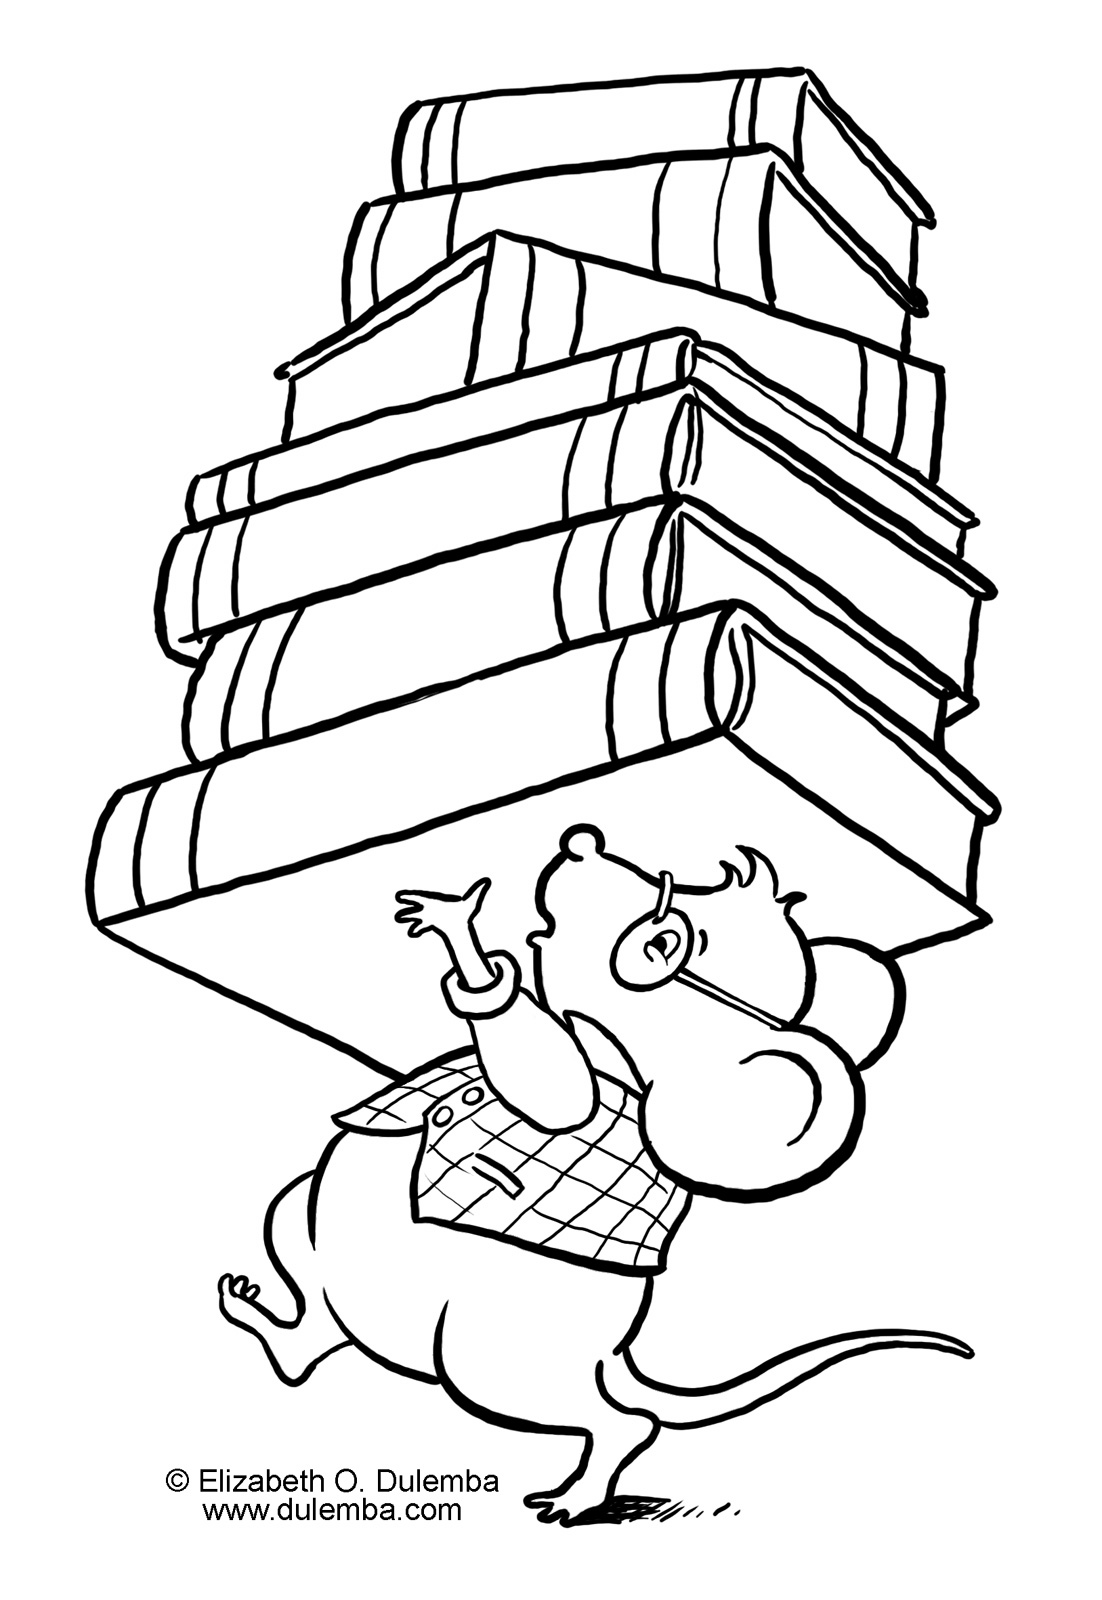 coloring pages from childrens books - photo#6